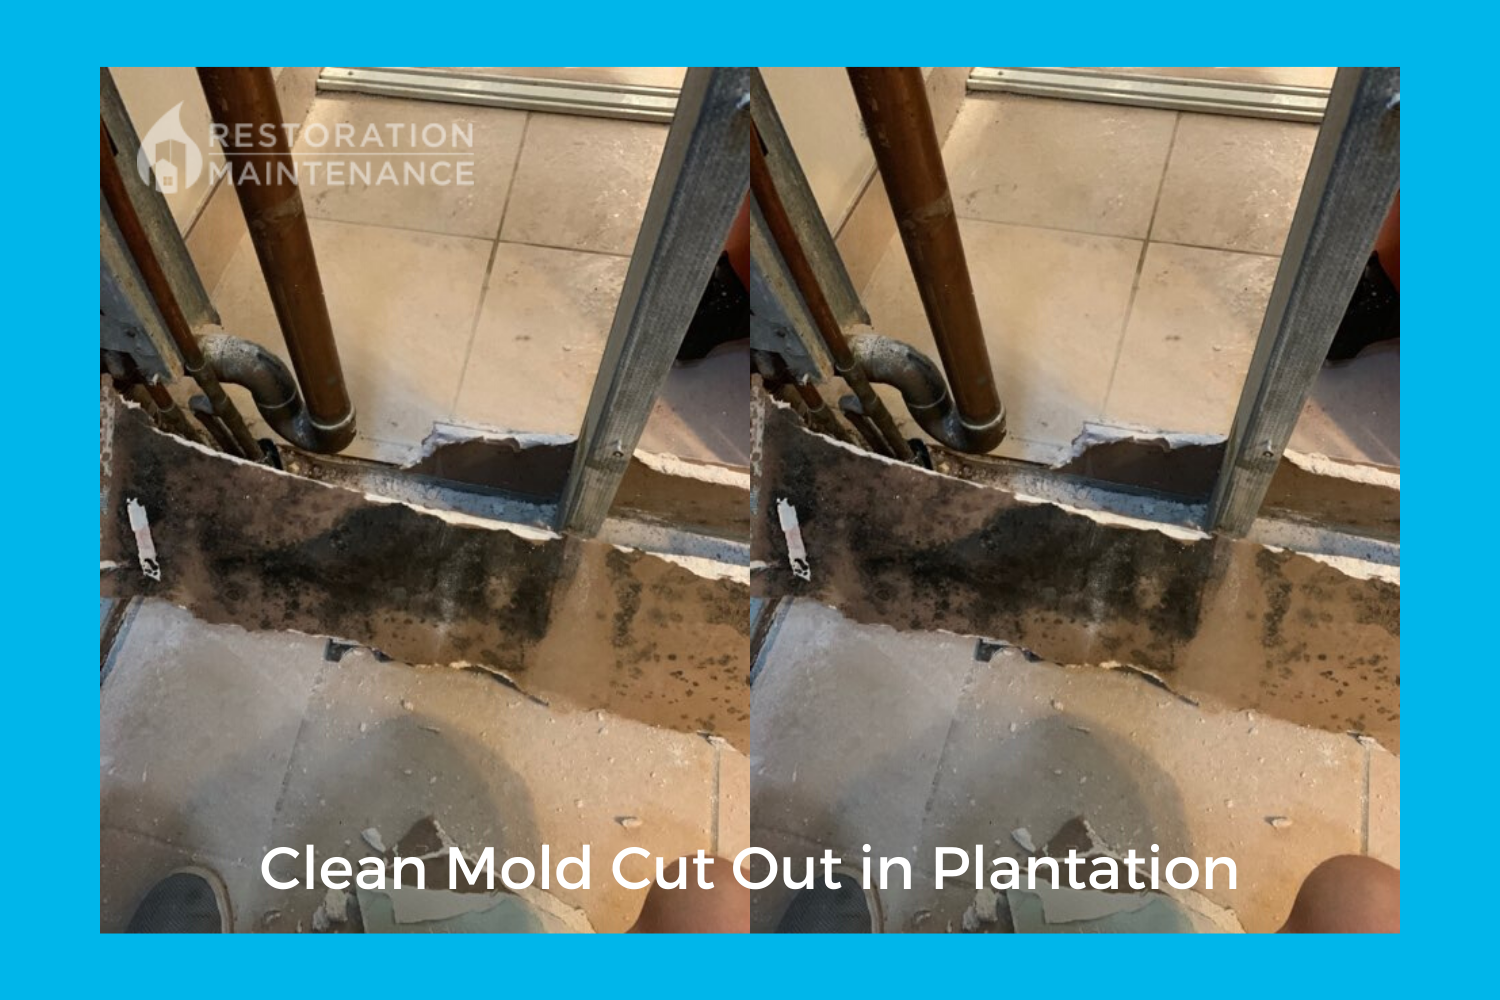 Restoration Maintenance mold cut out in unit in Plantation